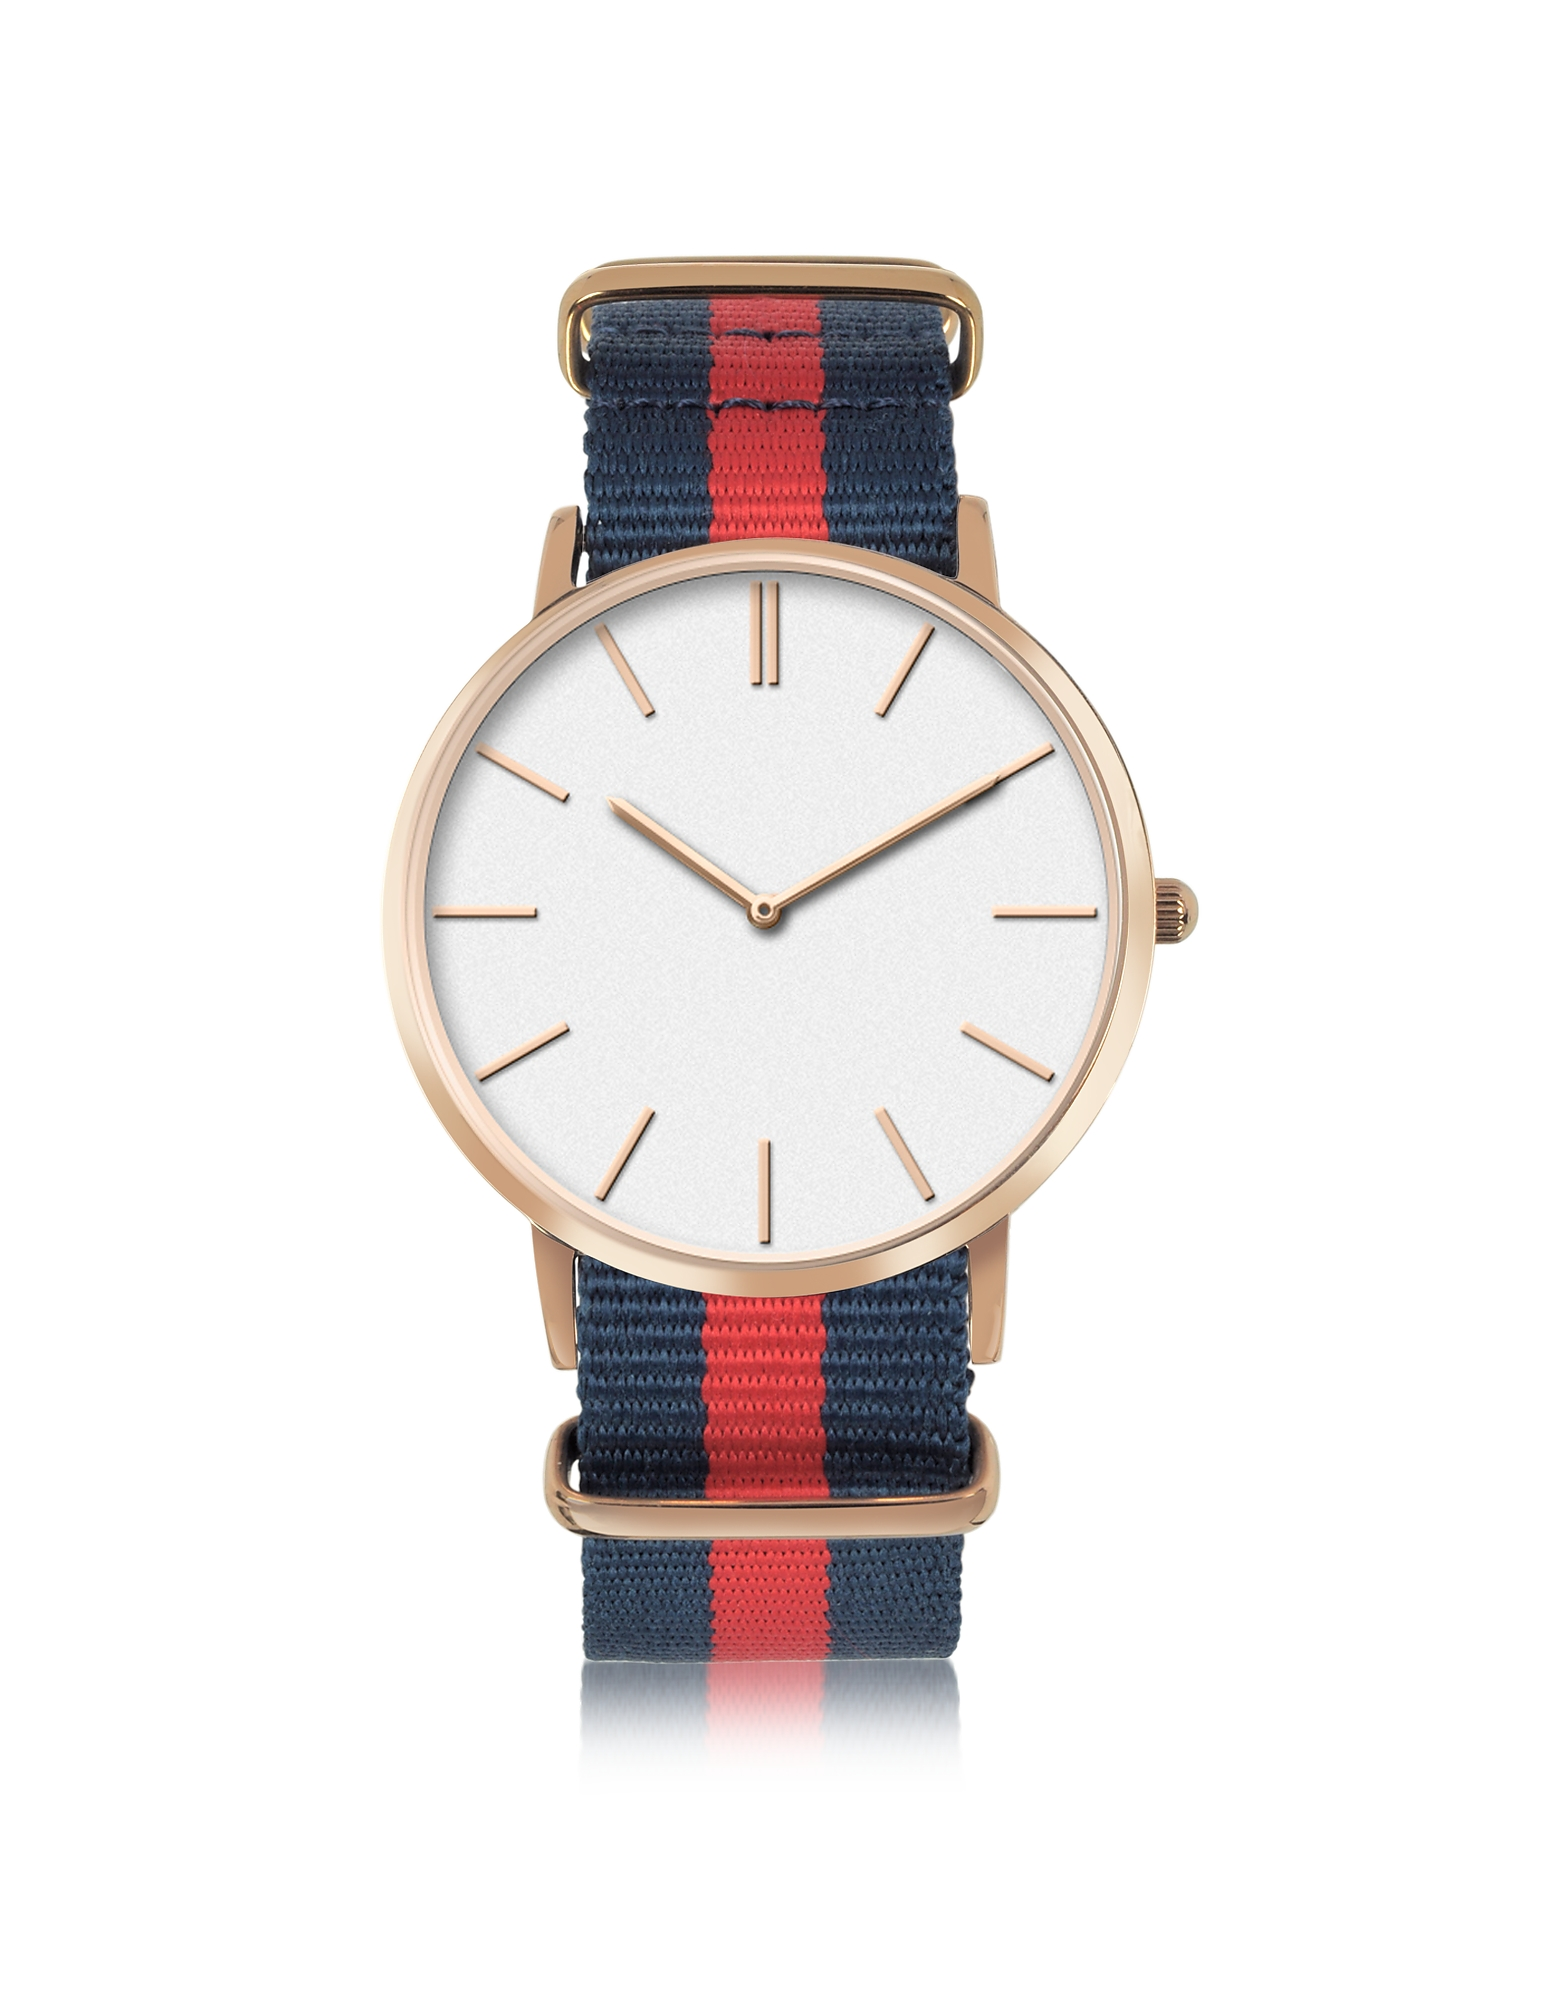 Rose Goldtone Stainless Steel Unisex Quartz Watch w/Light Blue and Pink Striped Canvas Band